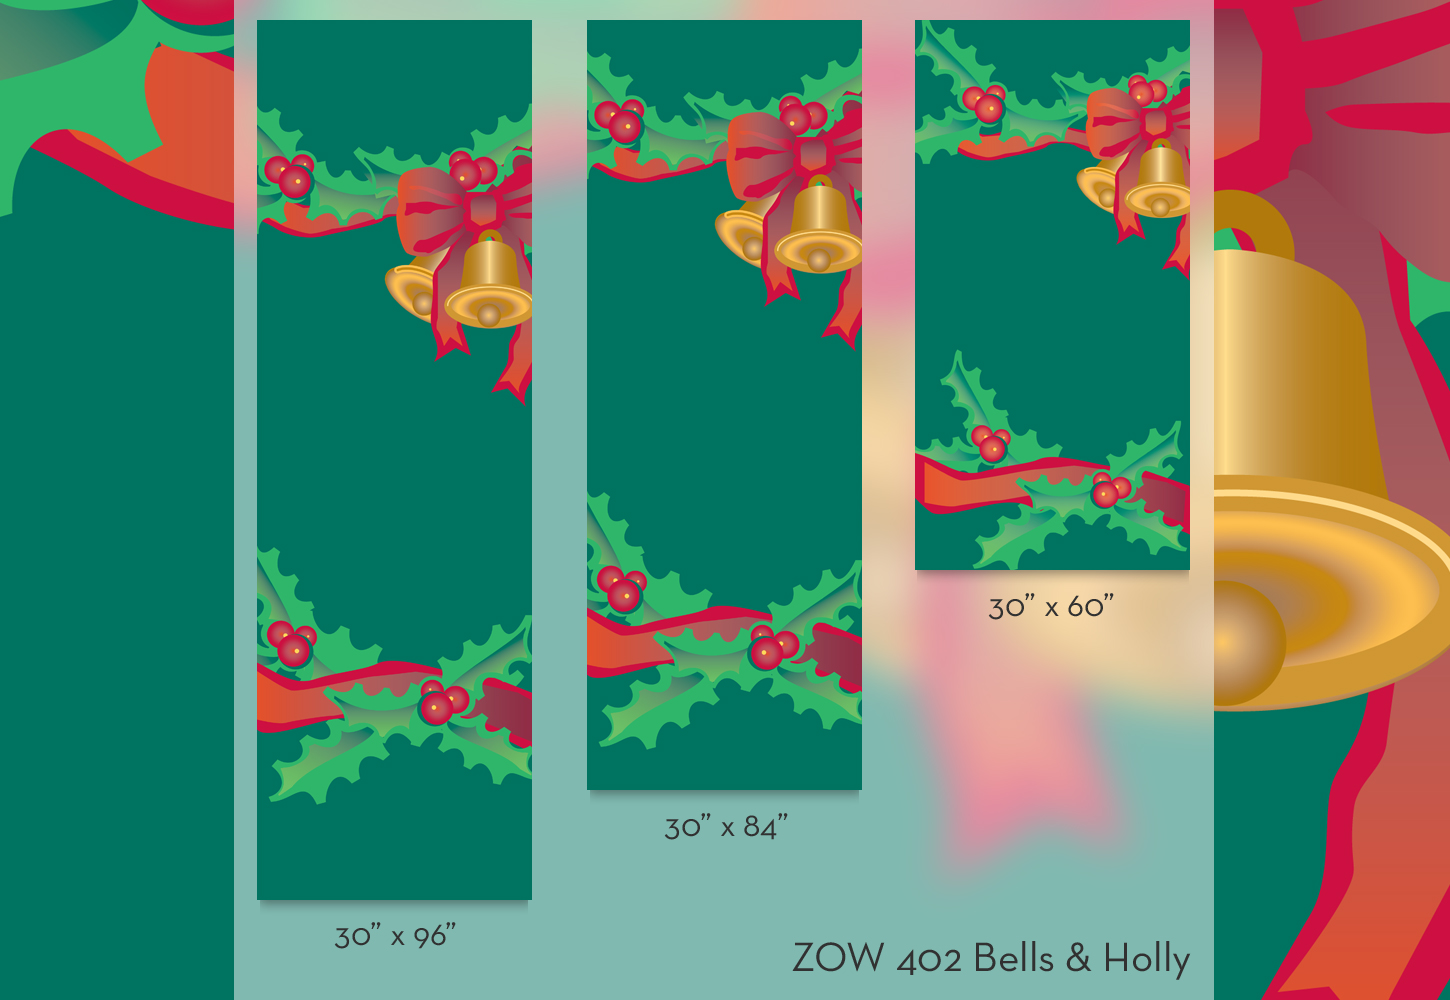 ZOW 402 Bells & Holly